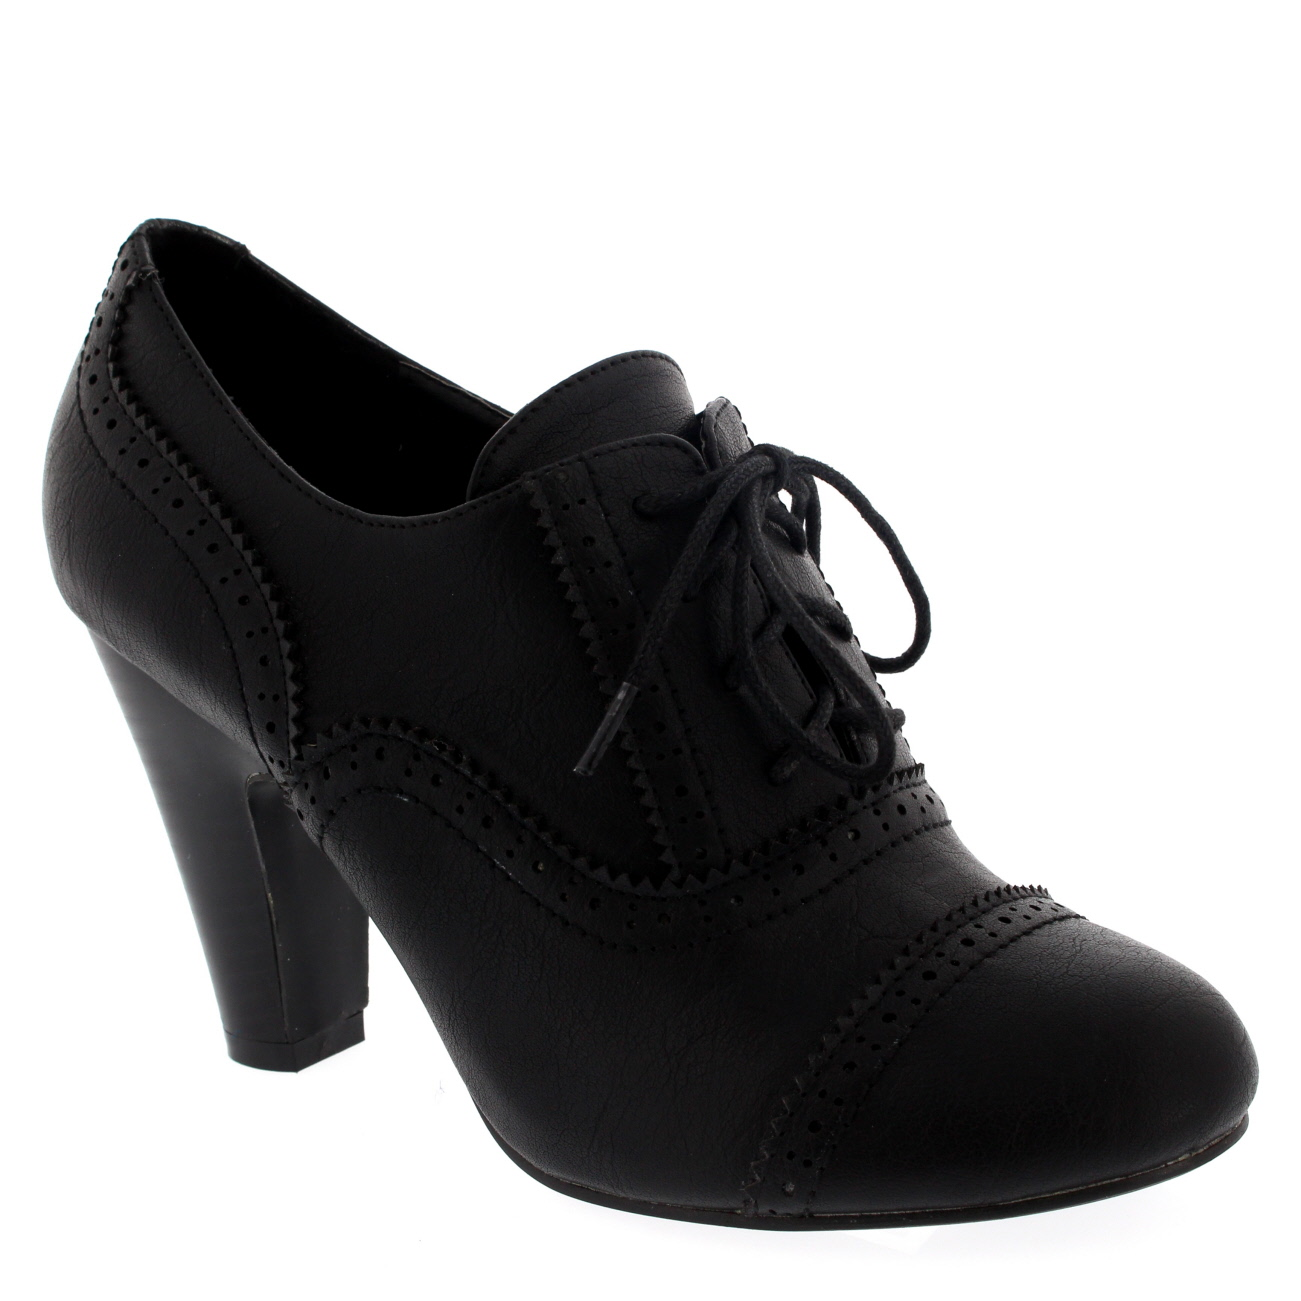 Mary Jane Style Mid Heel Ankle Boot Shoes